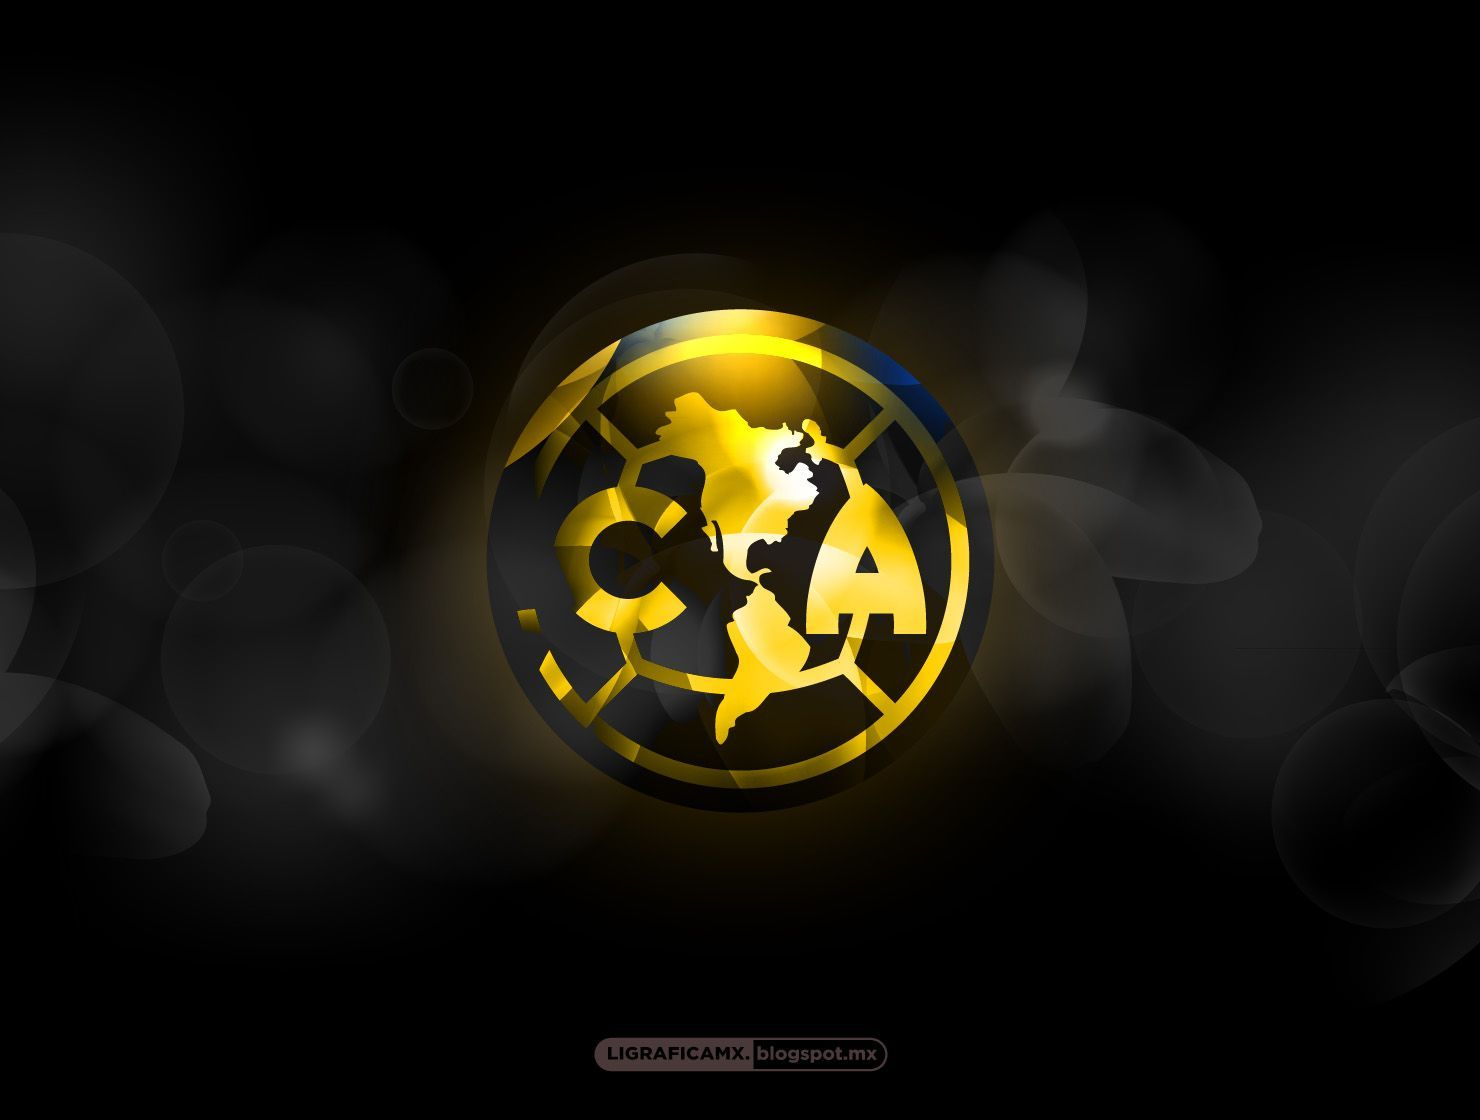 1480x1120 Pin by eleazar chavarria on deportes que me gustan   Pinterest ...